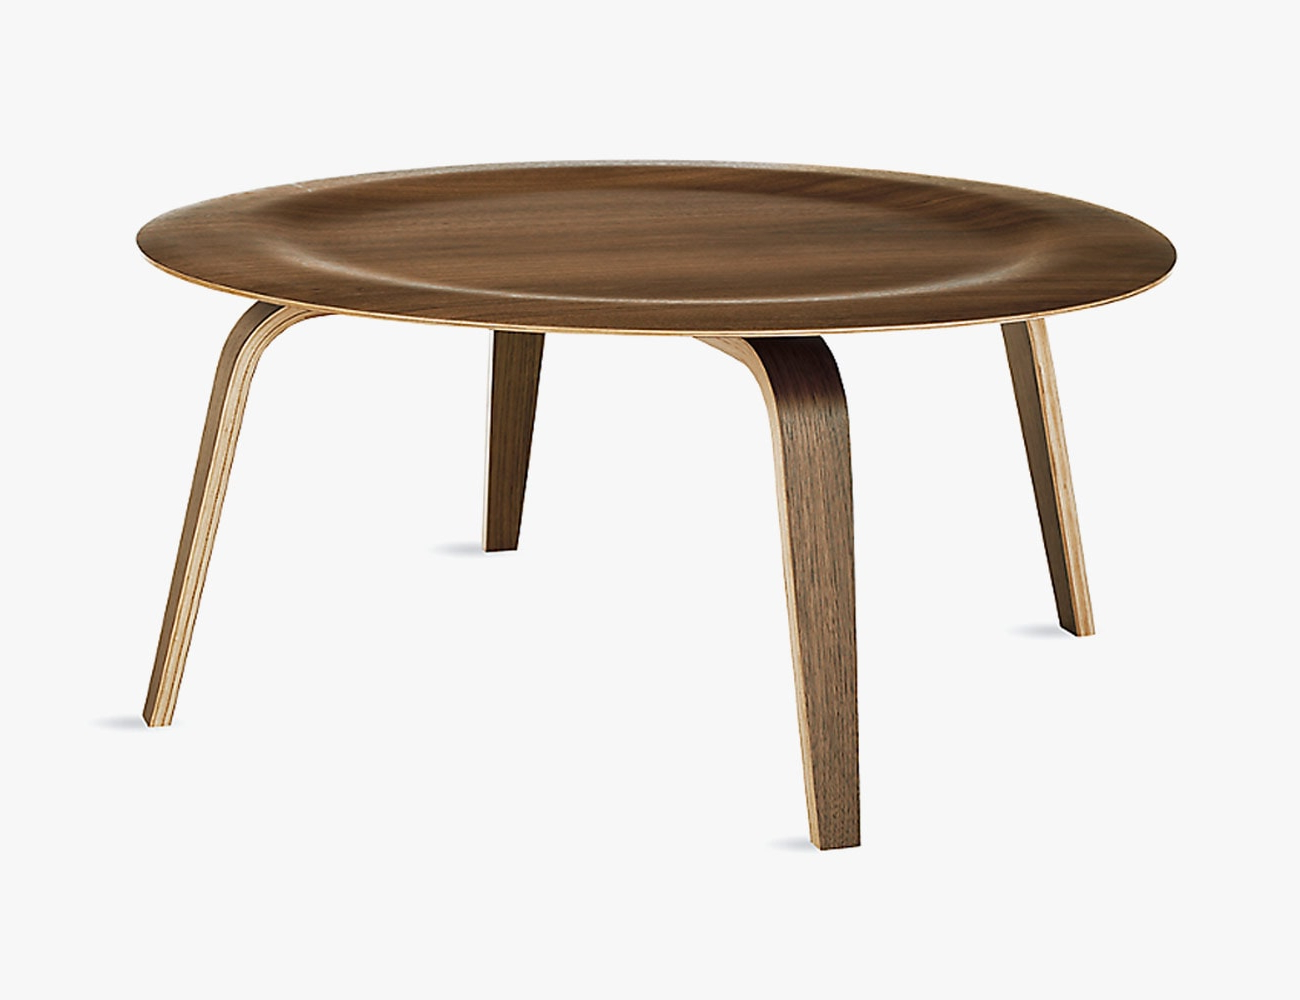 Shroom Large Coffee Tables Pertaining To Most Recent The Best Coffee Tables For Every Budget And Style (Gallery 5 of 20)